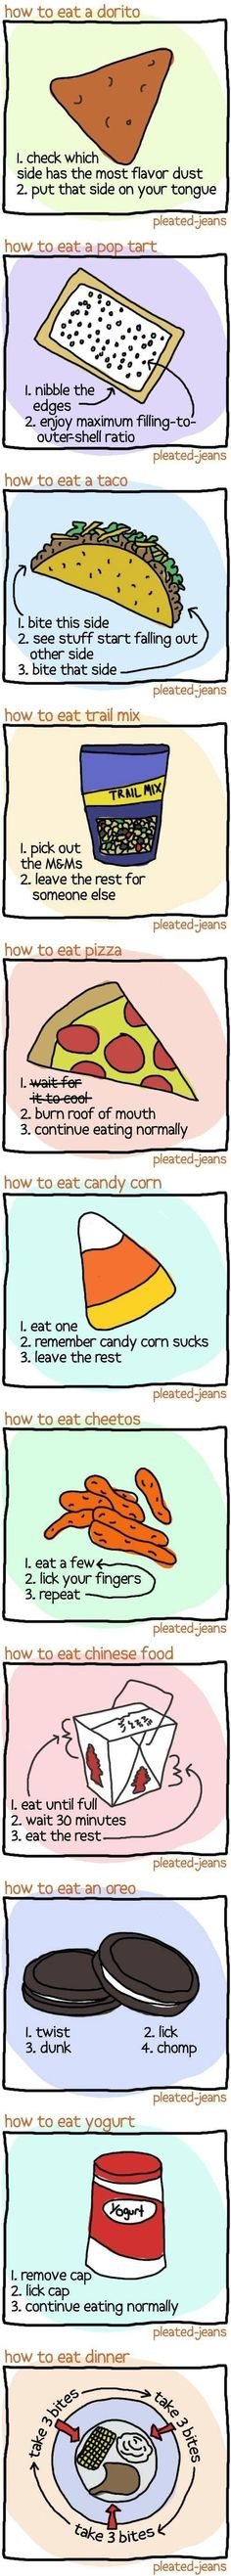 LOL I love the candy corn one! That stuff is so nasty!!